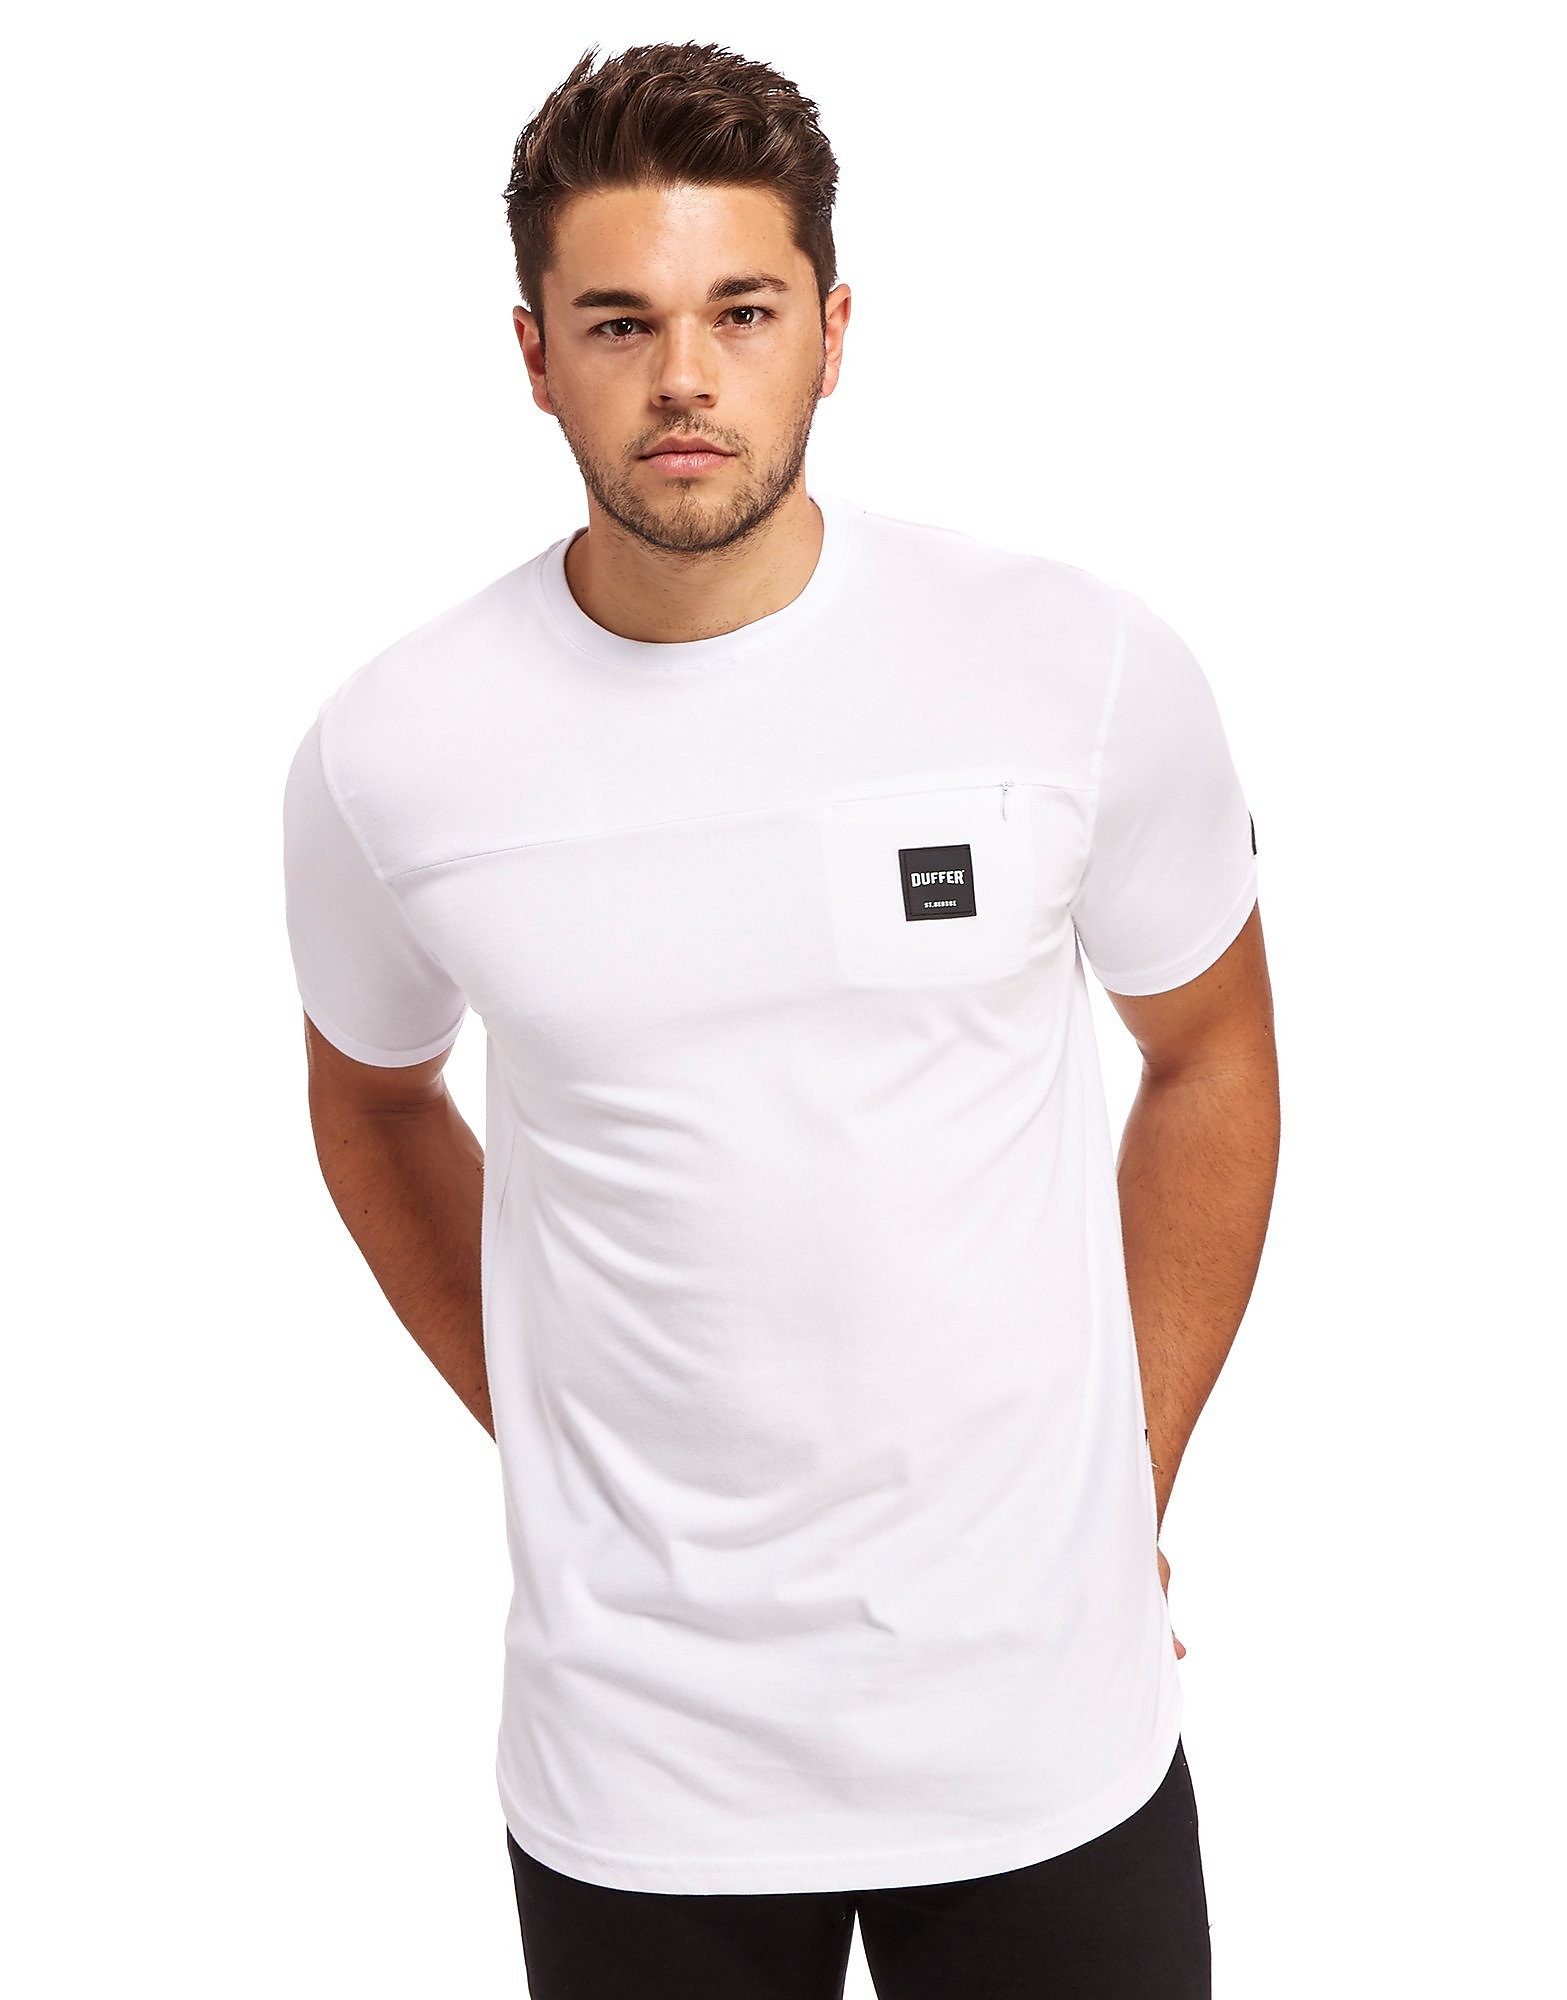 Duffer of St George Junction T-Shirt